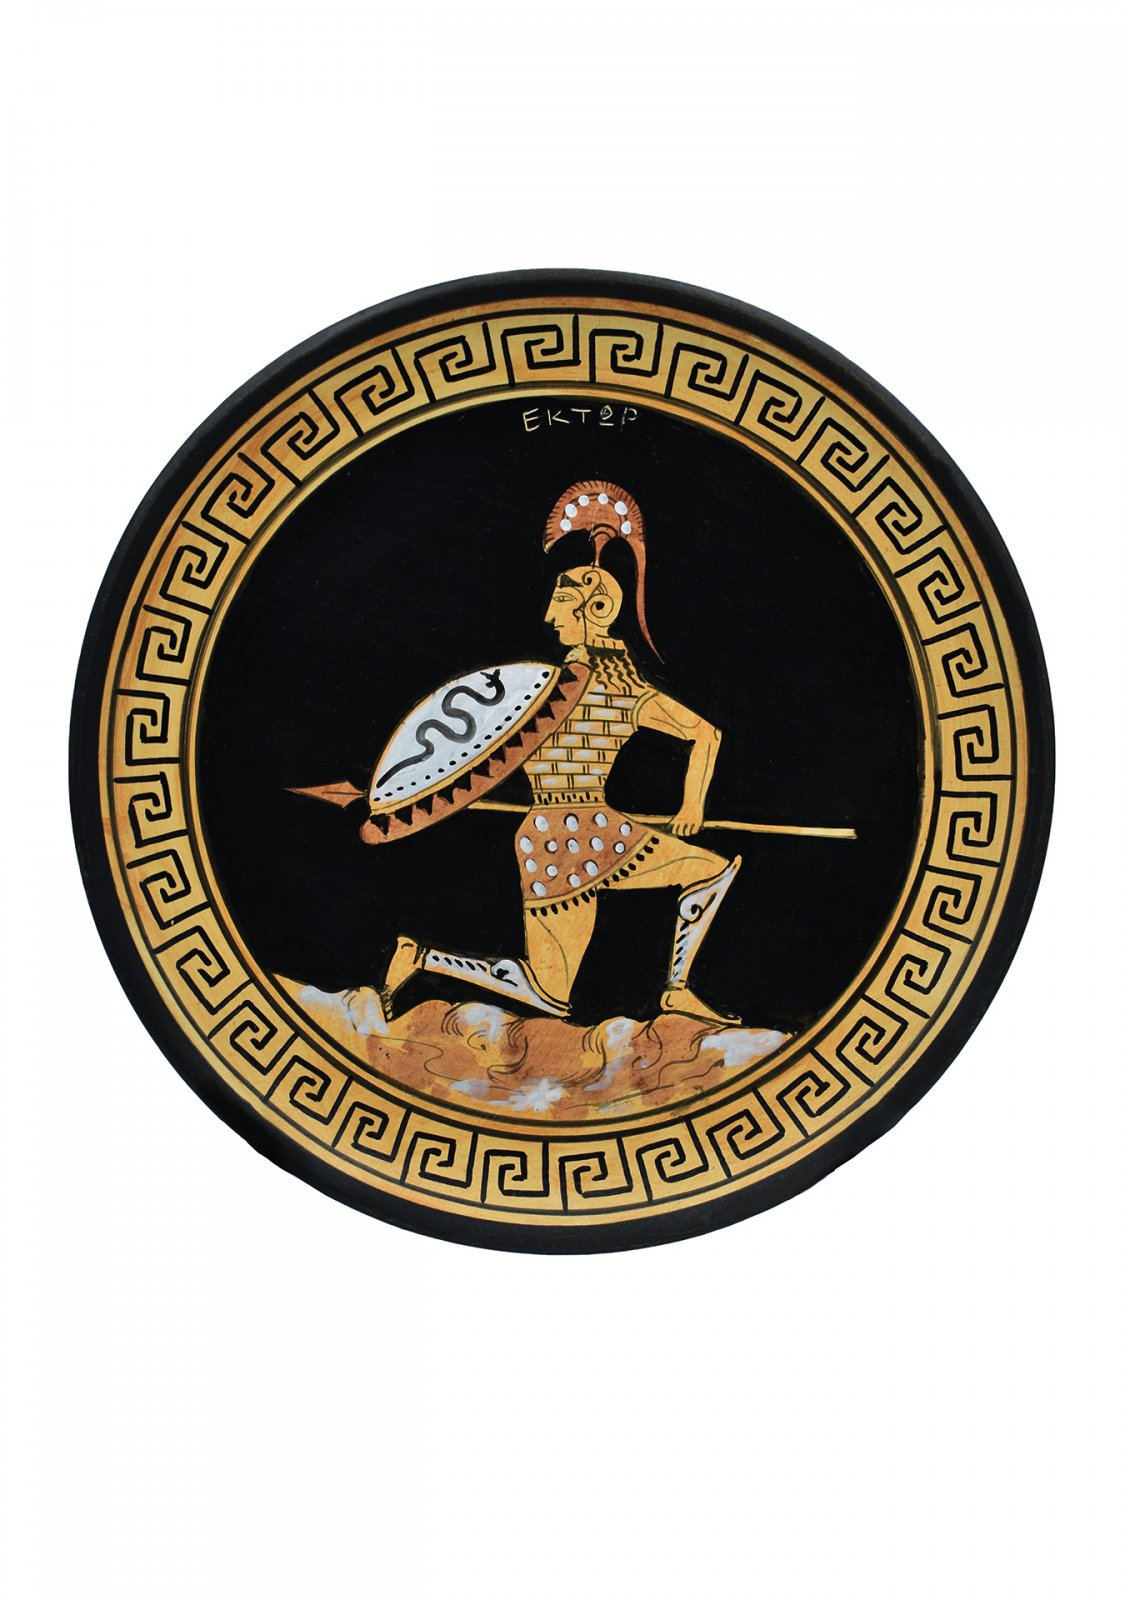 Greek ceramic plate depicting Hector, prince and warrior of Troy (28cm)